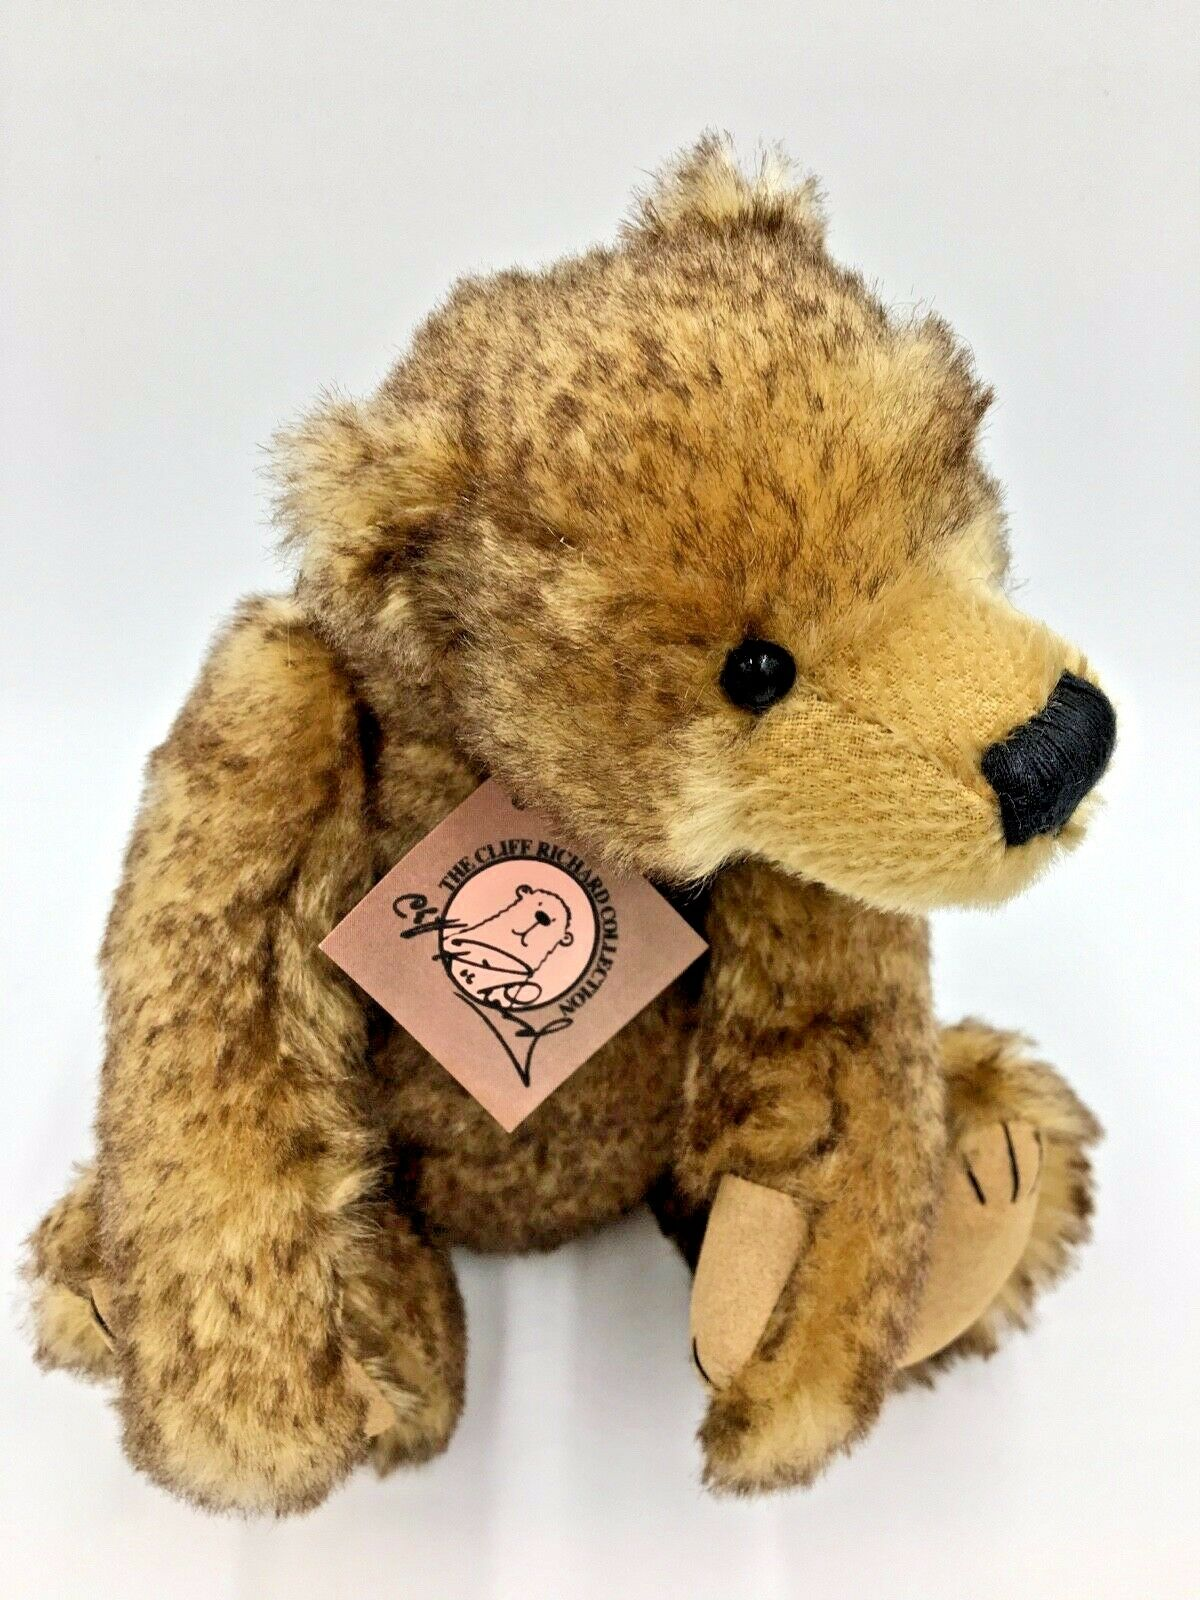 Cliff Richard Collection Collection Collection Teddy Bear Artist Susan Johnson Collectable Cameo Bears c3cc8a